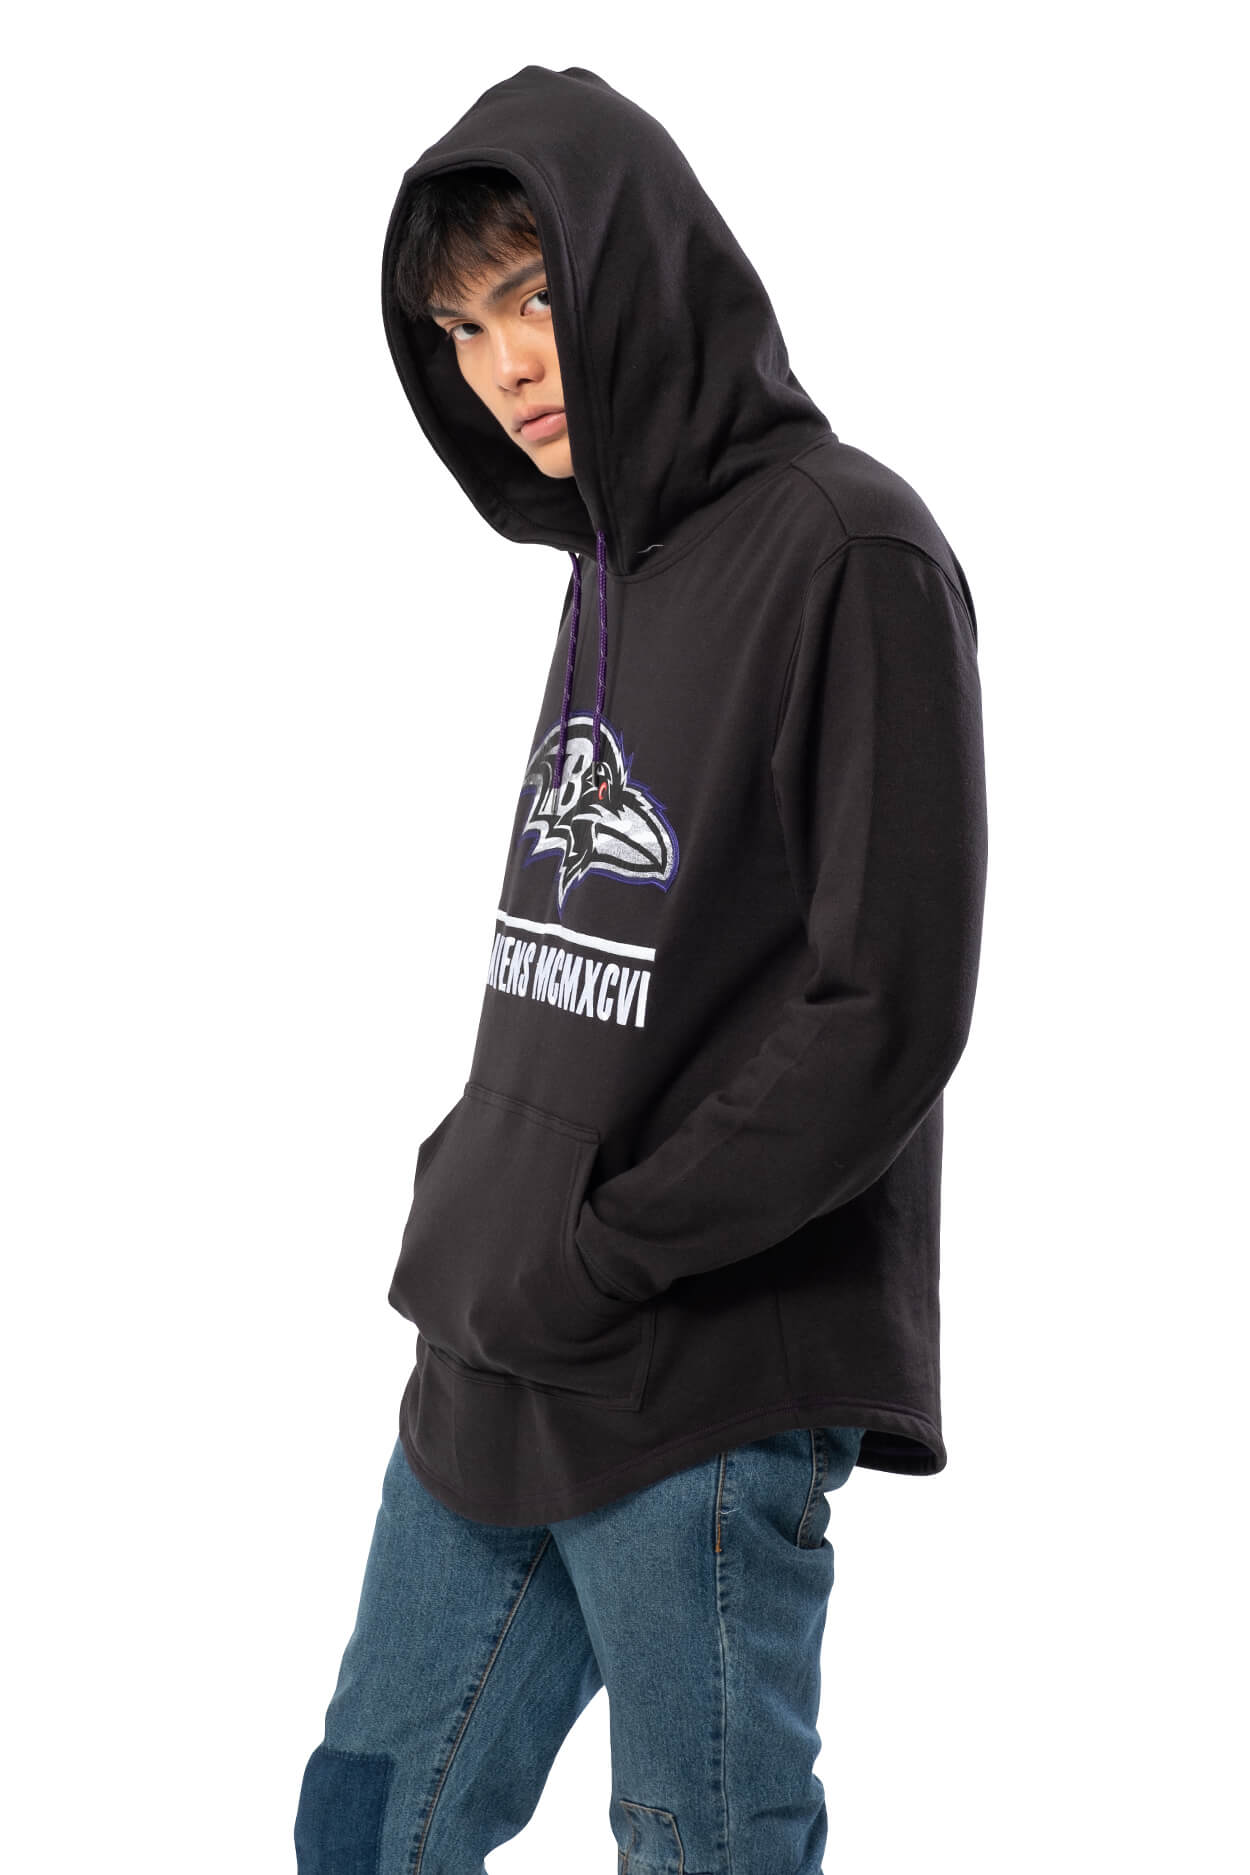 NFL Baltimore Ravens Men's Embroidered Hoodie|Baltimore Ravens